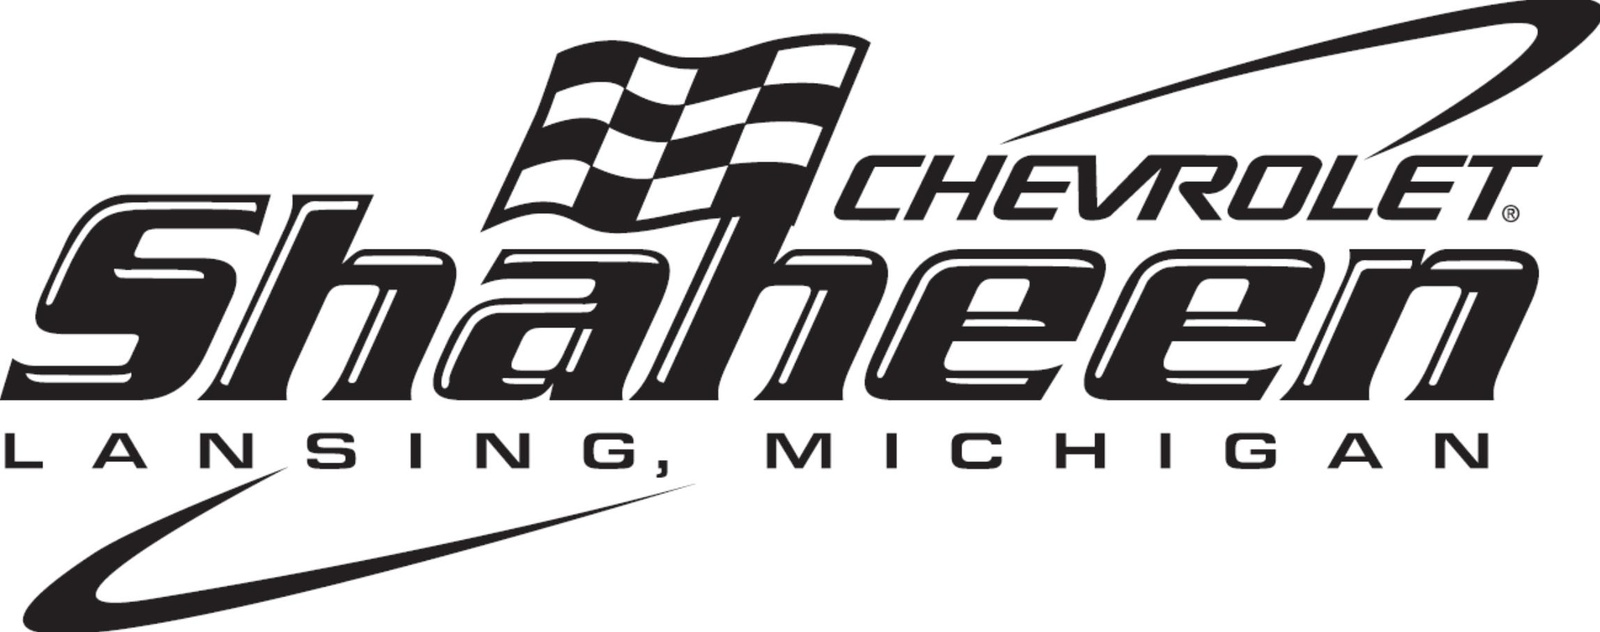 Shaheen Automotive Group logo